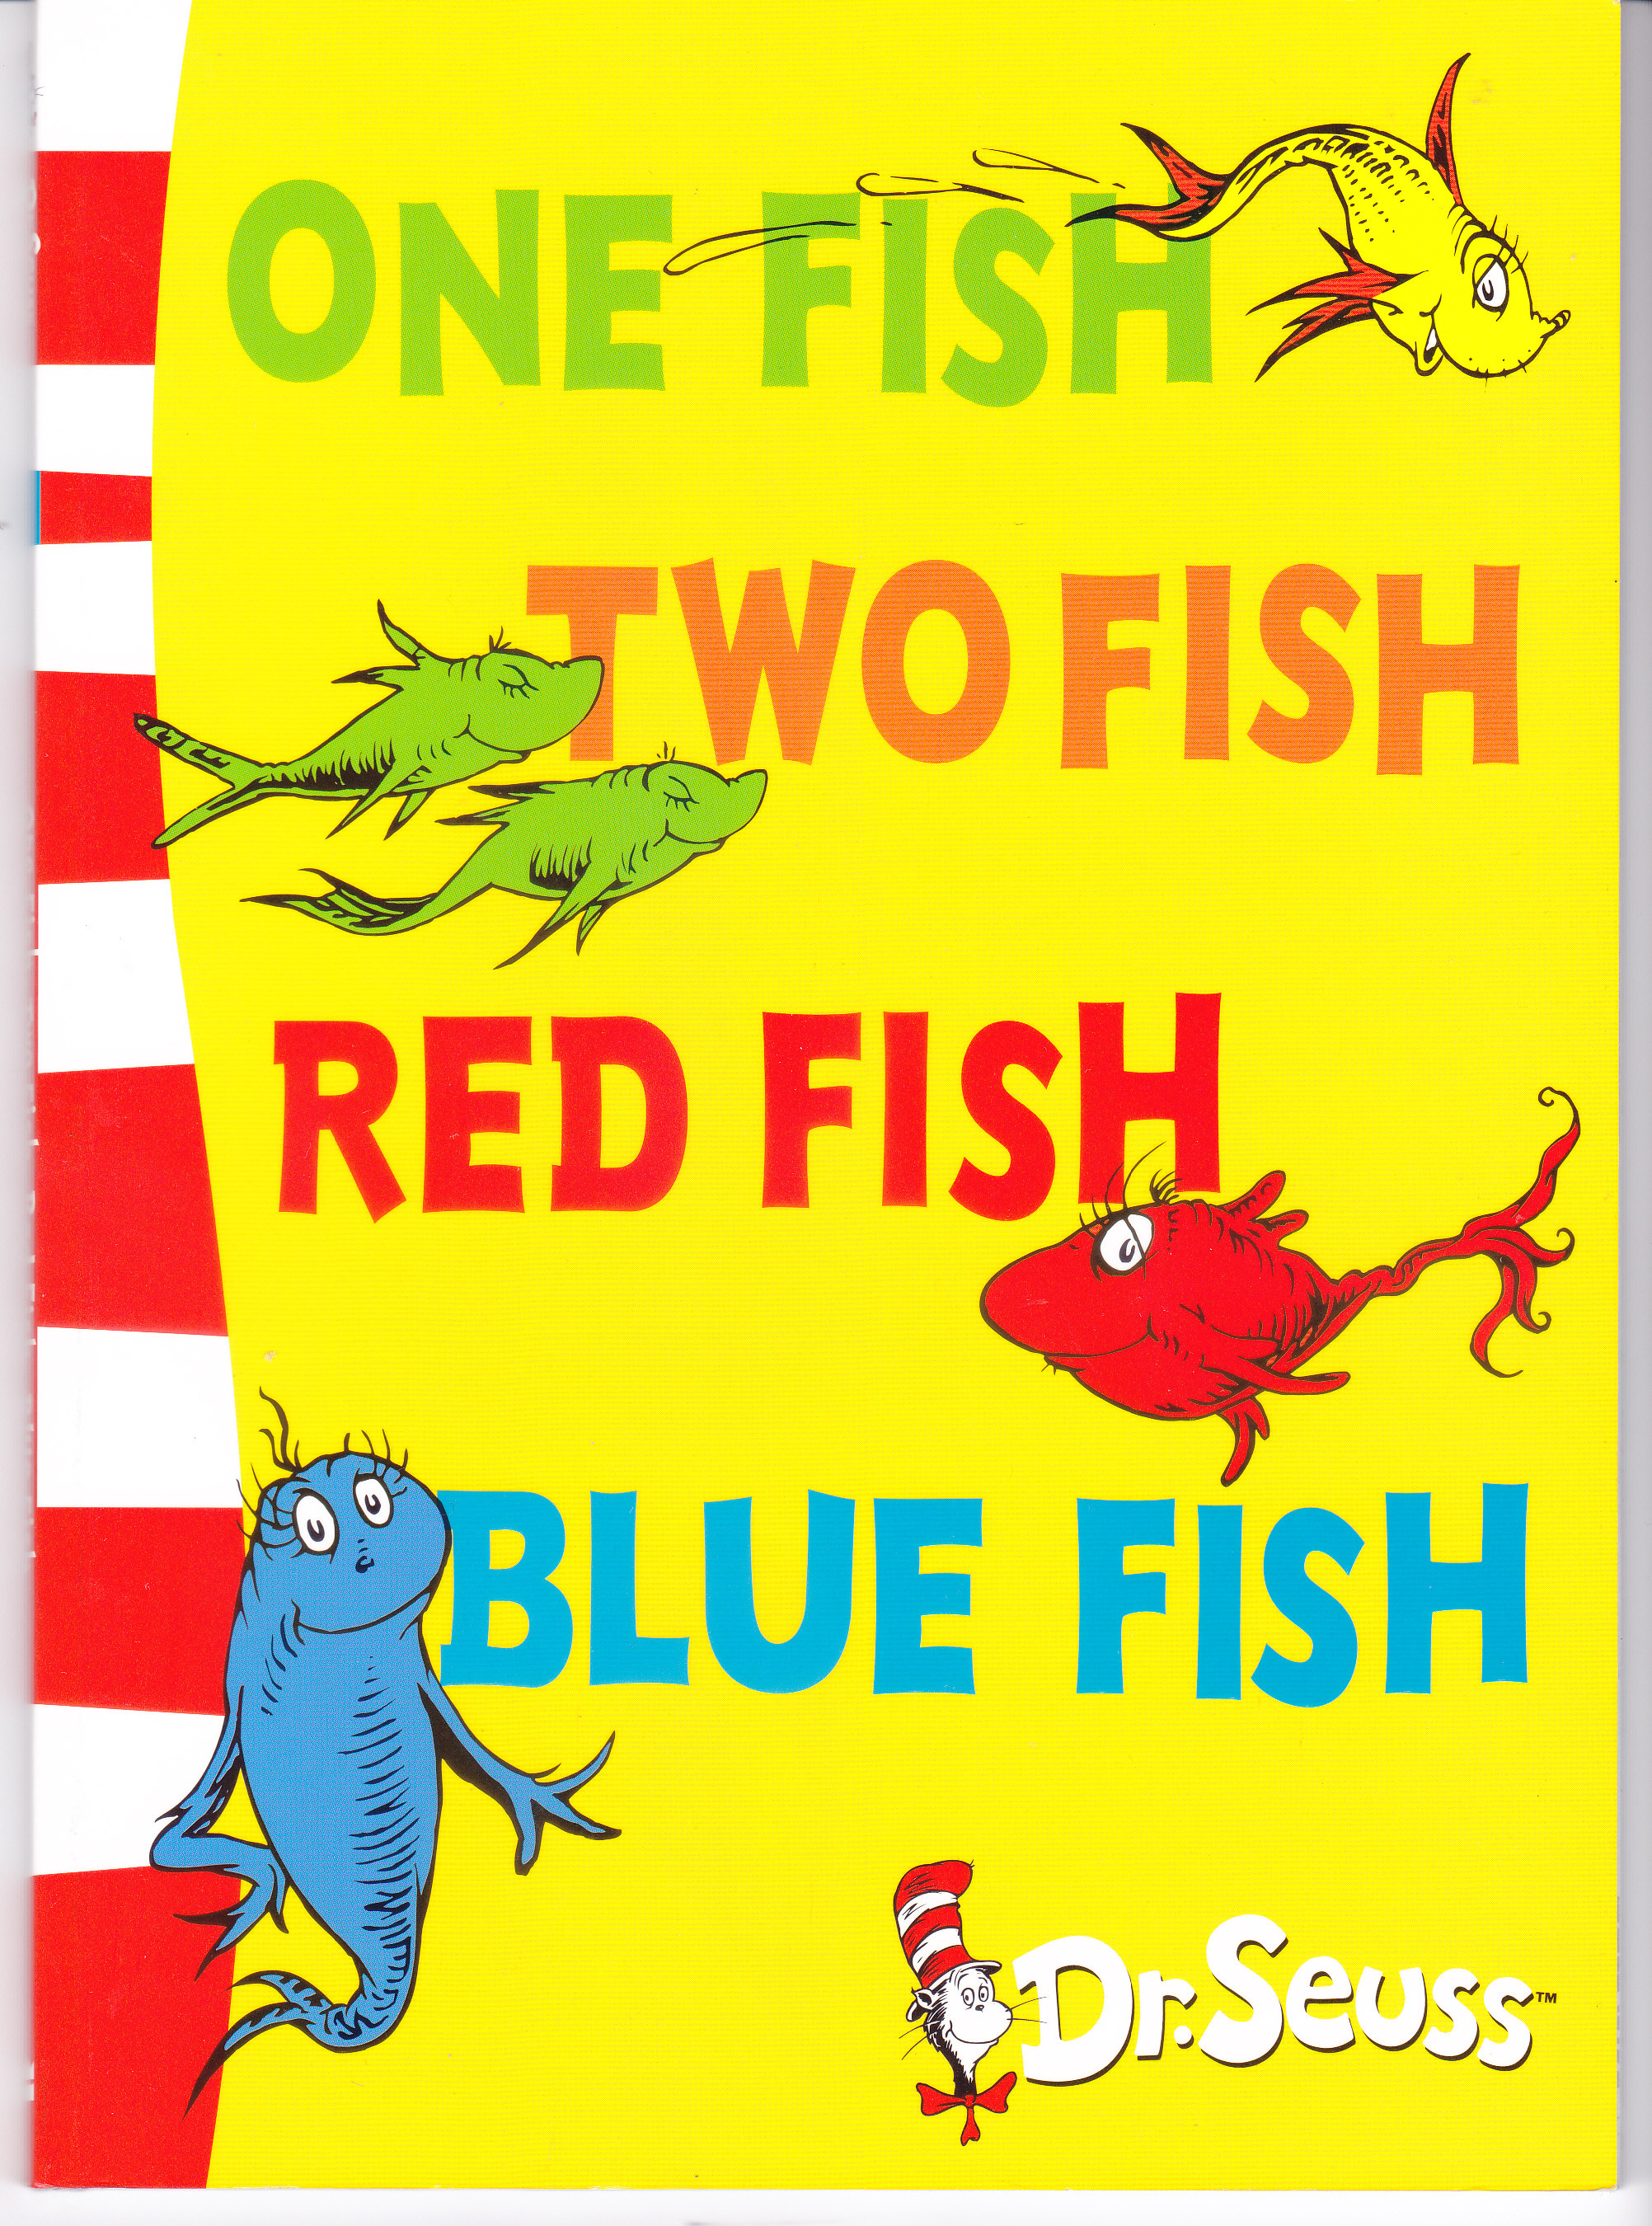 One fish two fish red fish blue fish playhood for One fish two fish red fish blue fish costume